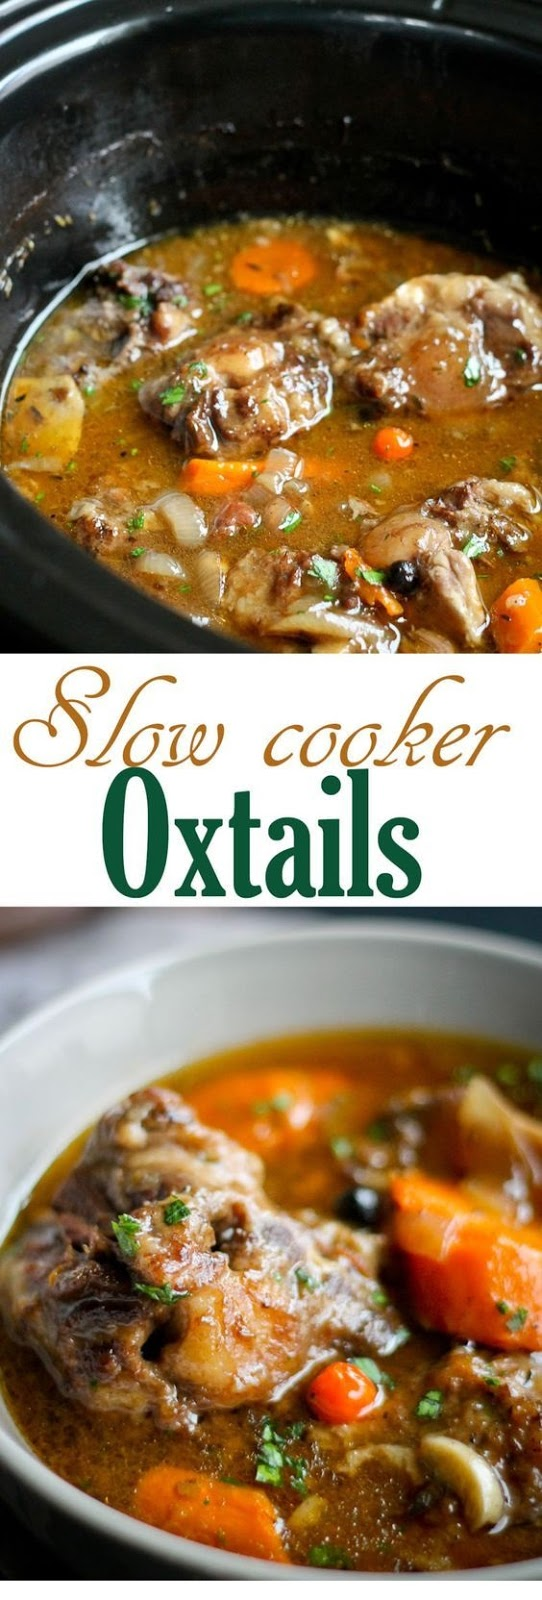 Slow Cooker Oxtails